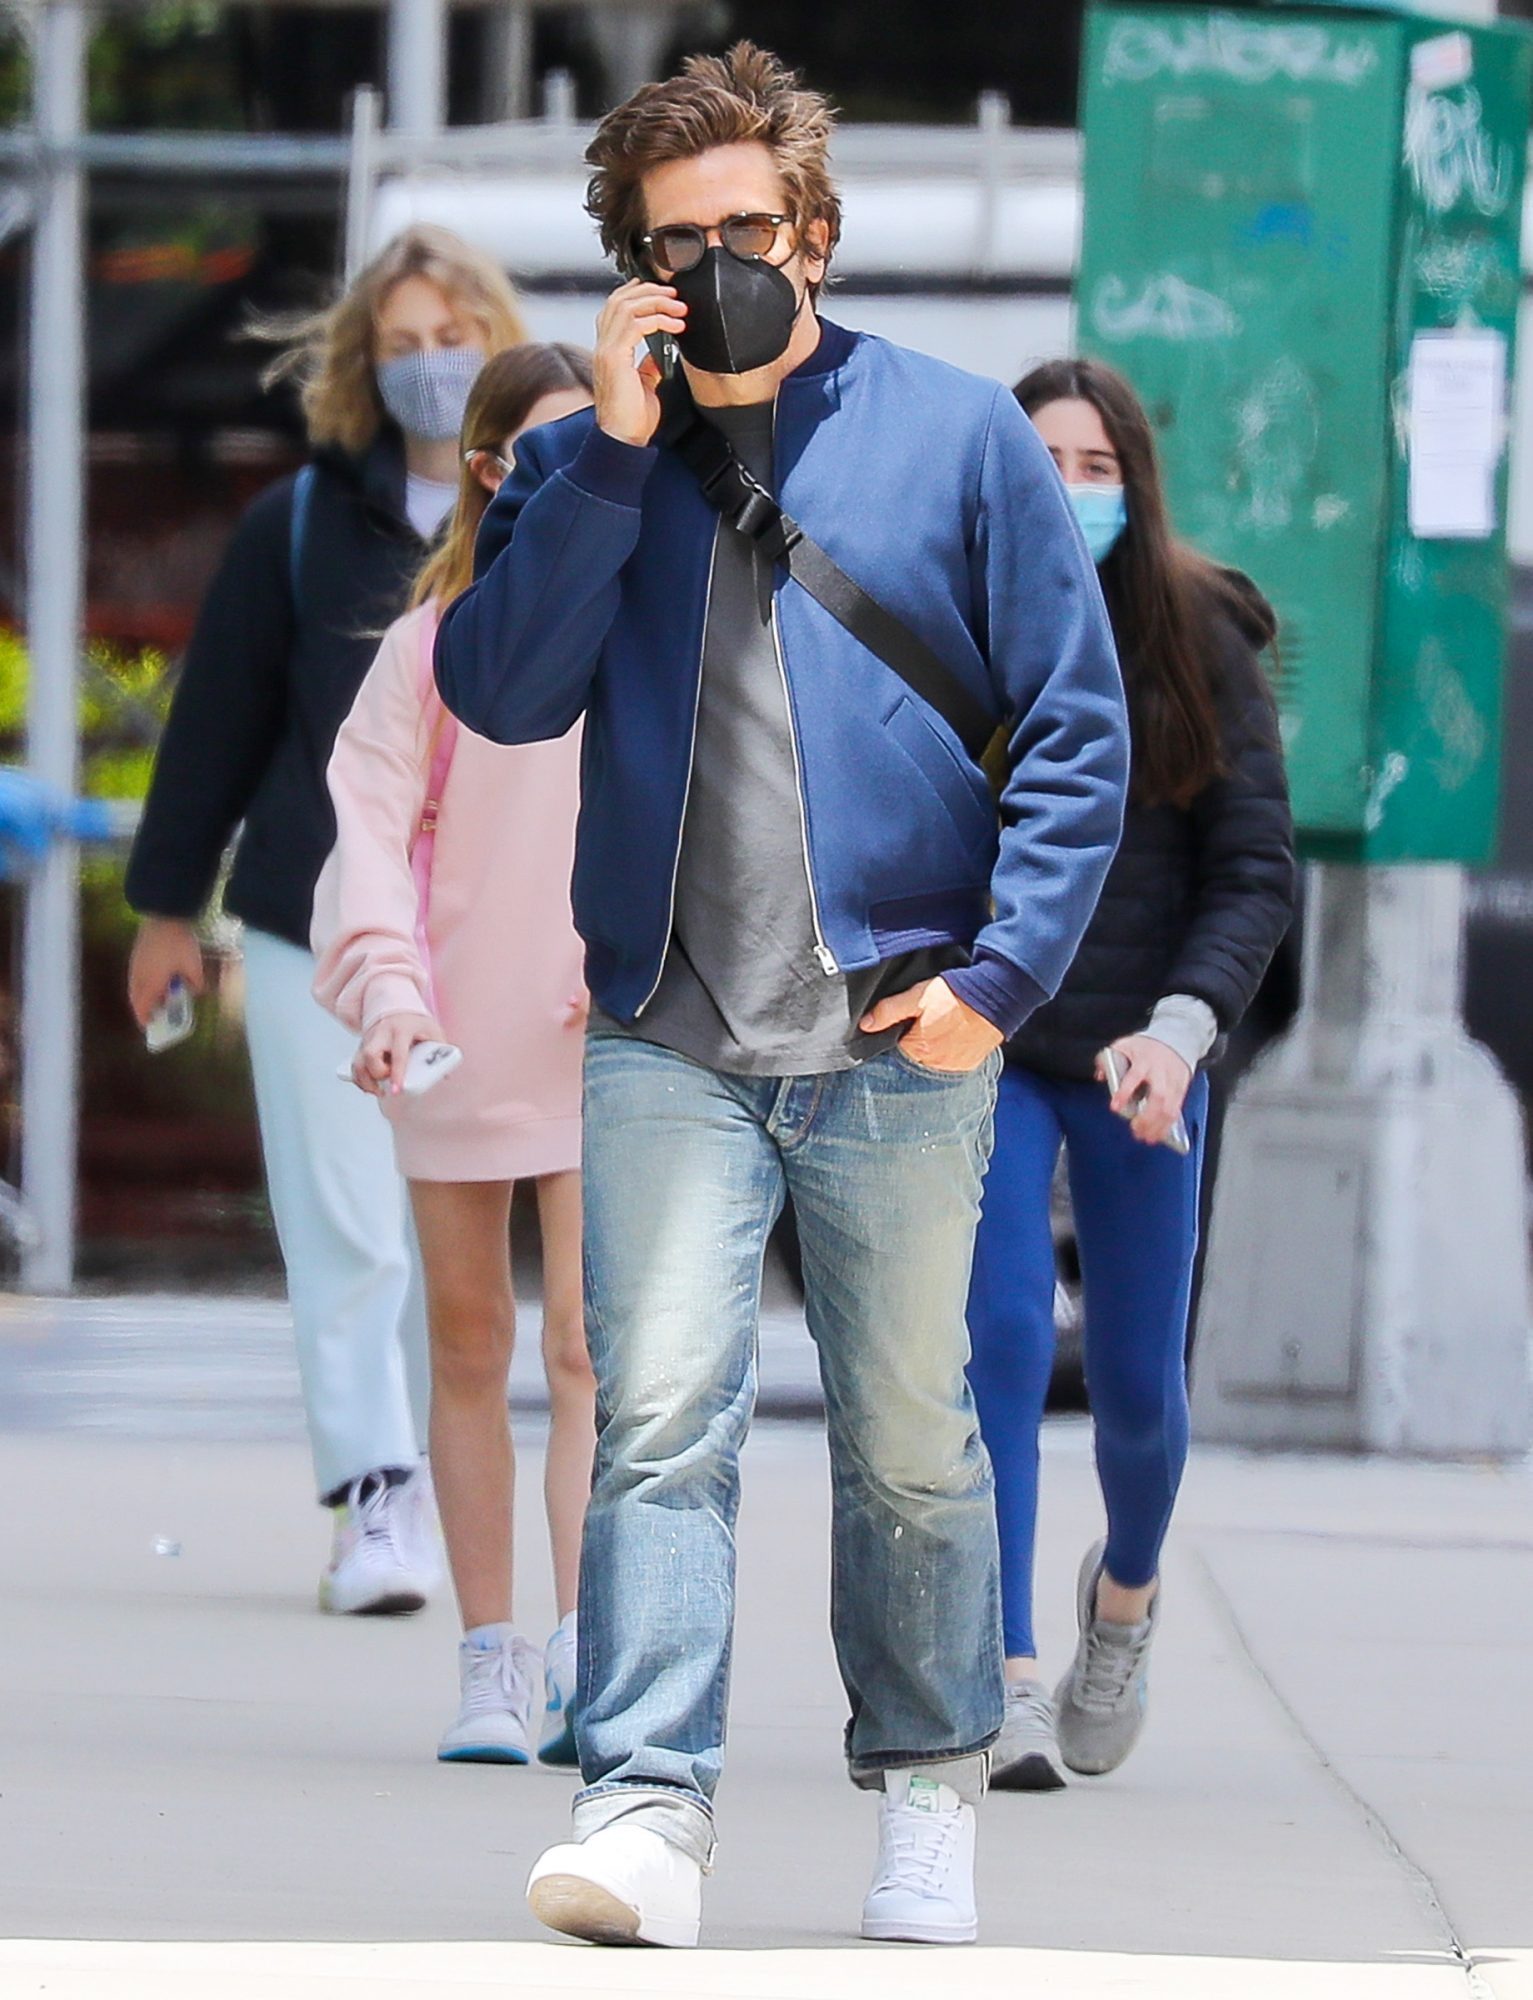 Jake Gyllenhaal And Jeanne Cadieu Go In Separate Ways After They Get Spotted Walking Around In SoHo, NYC